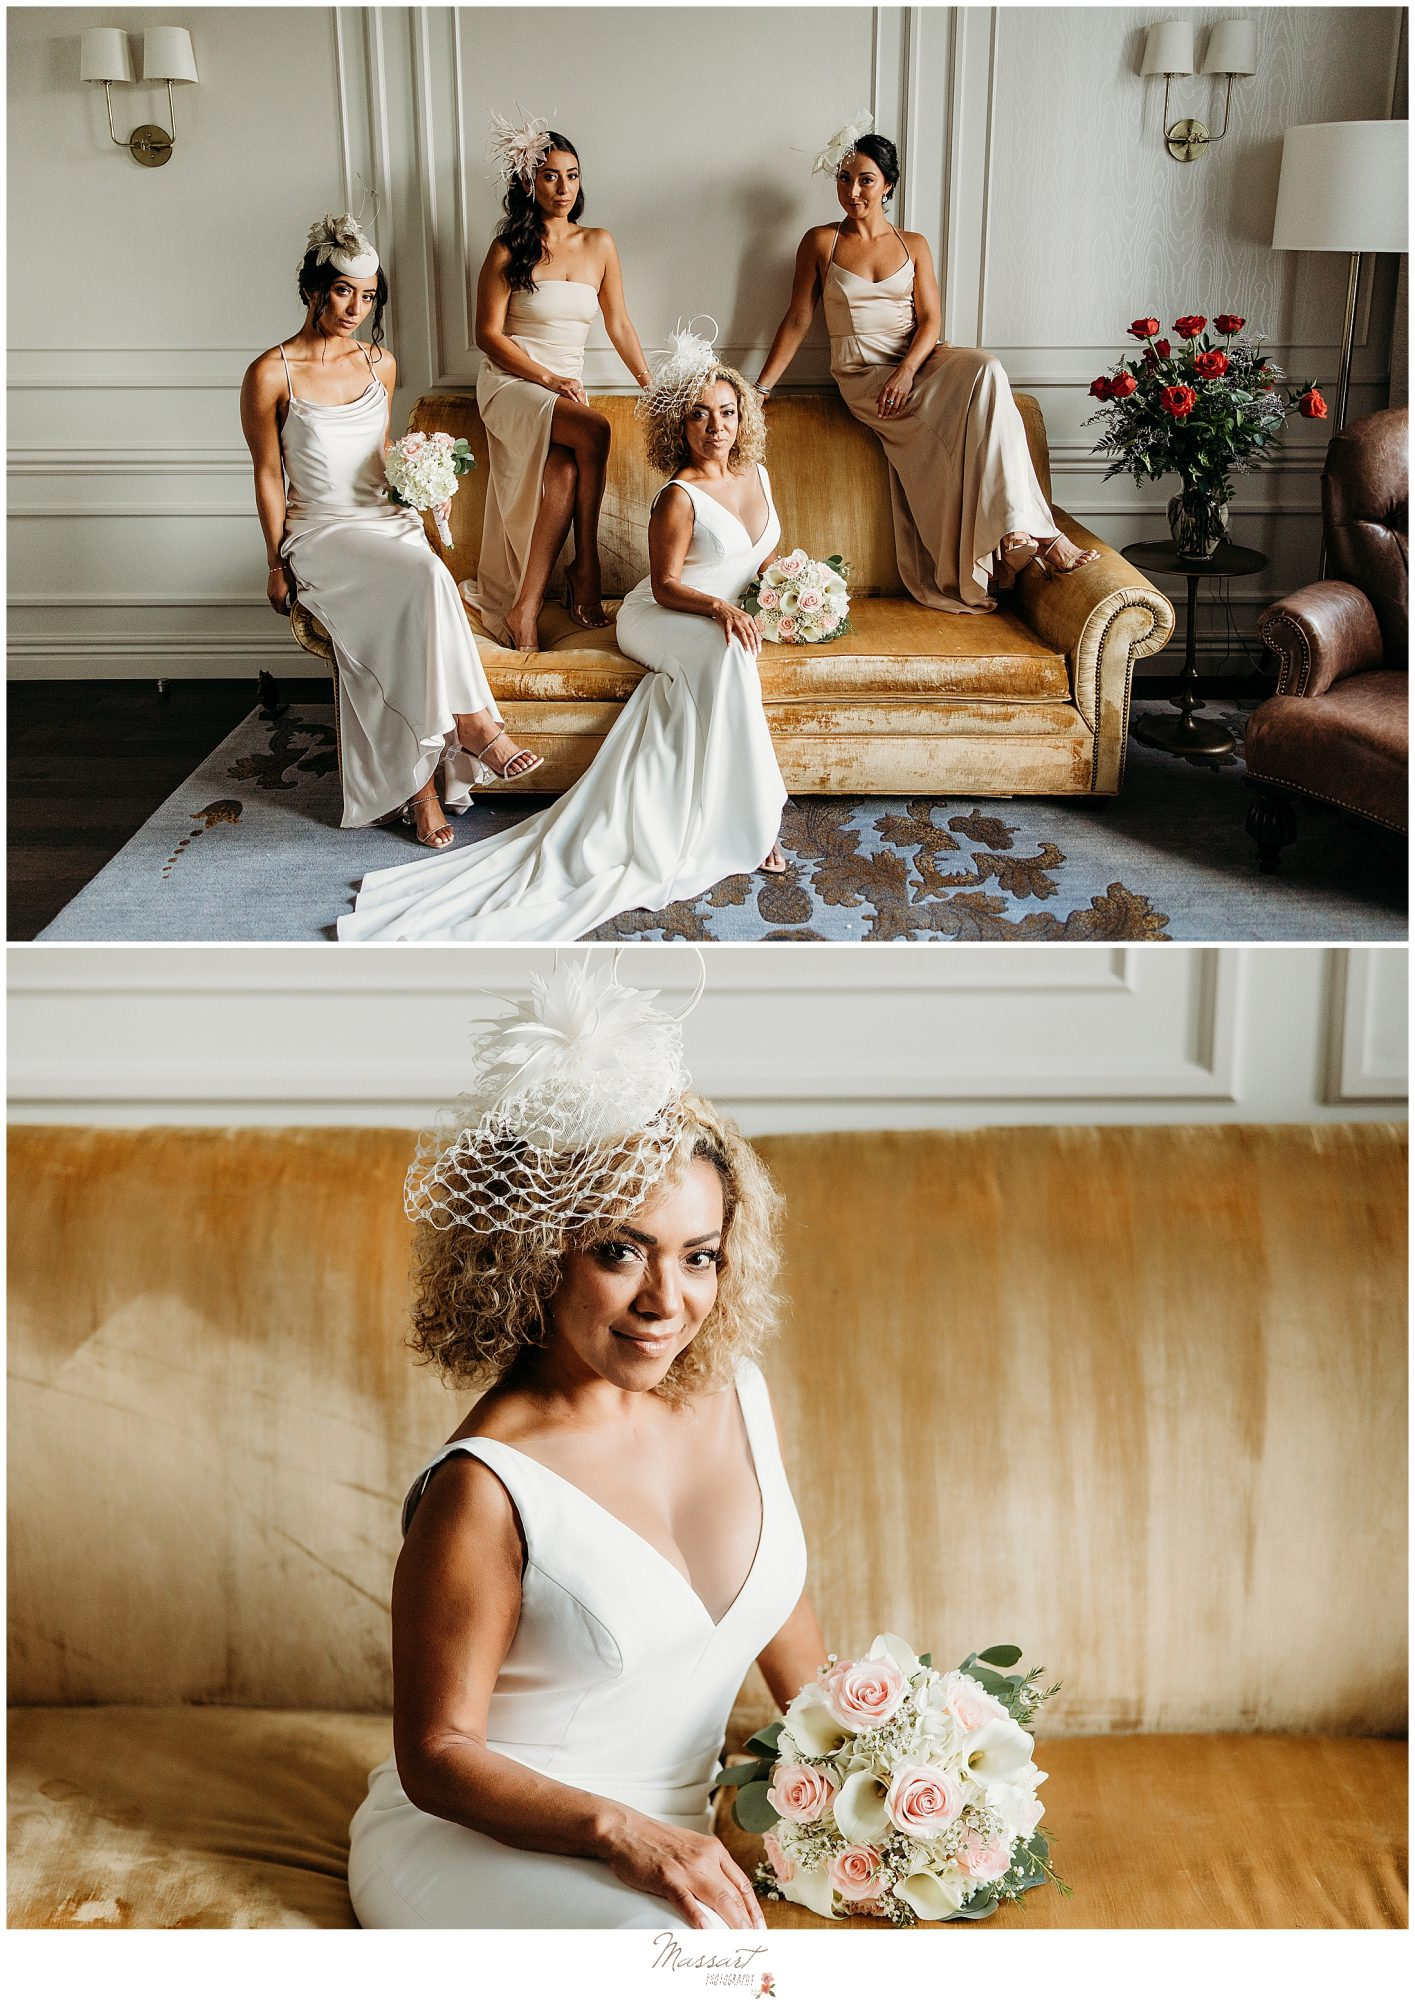 Glam portrait of bride and bridal party by RI photographer